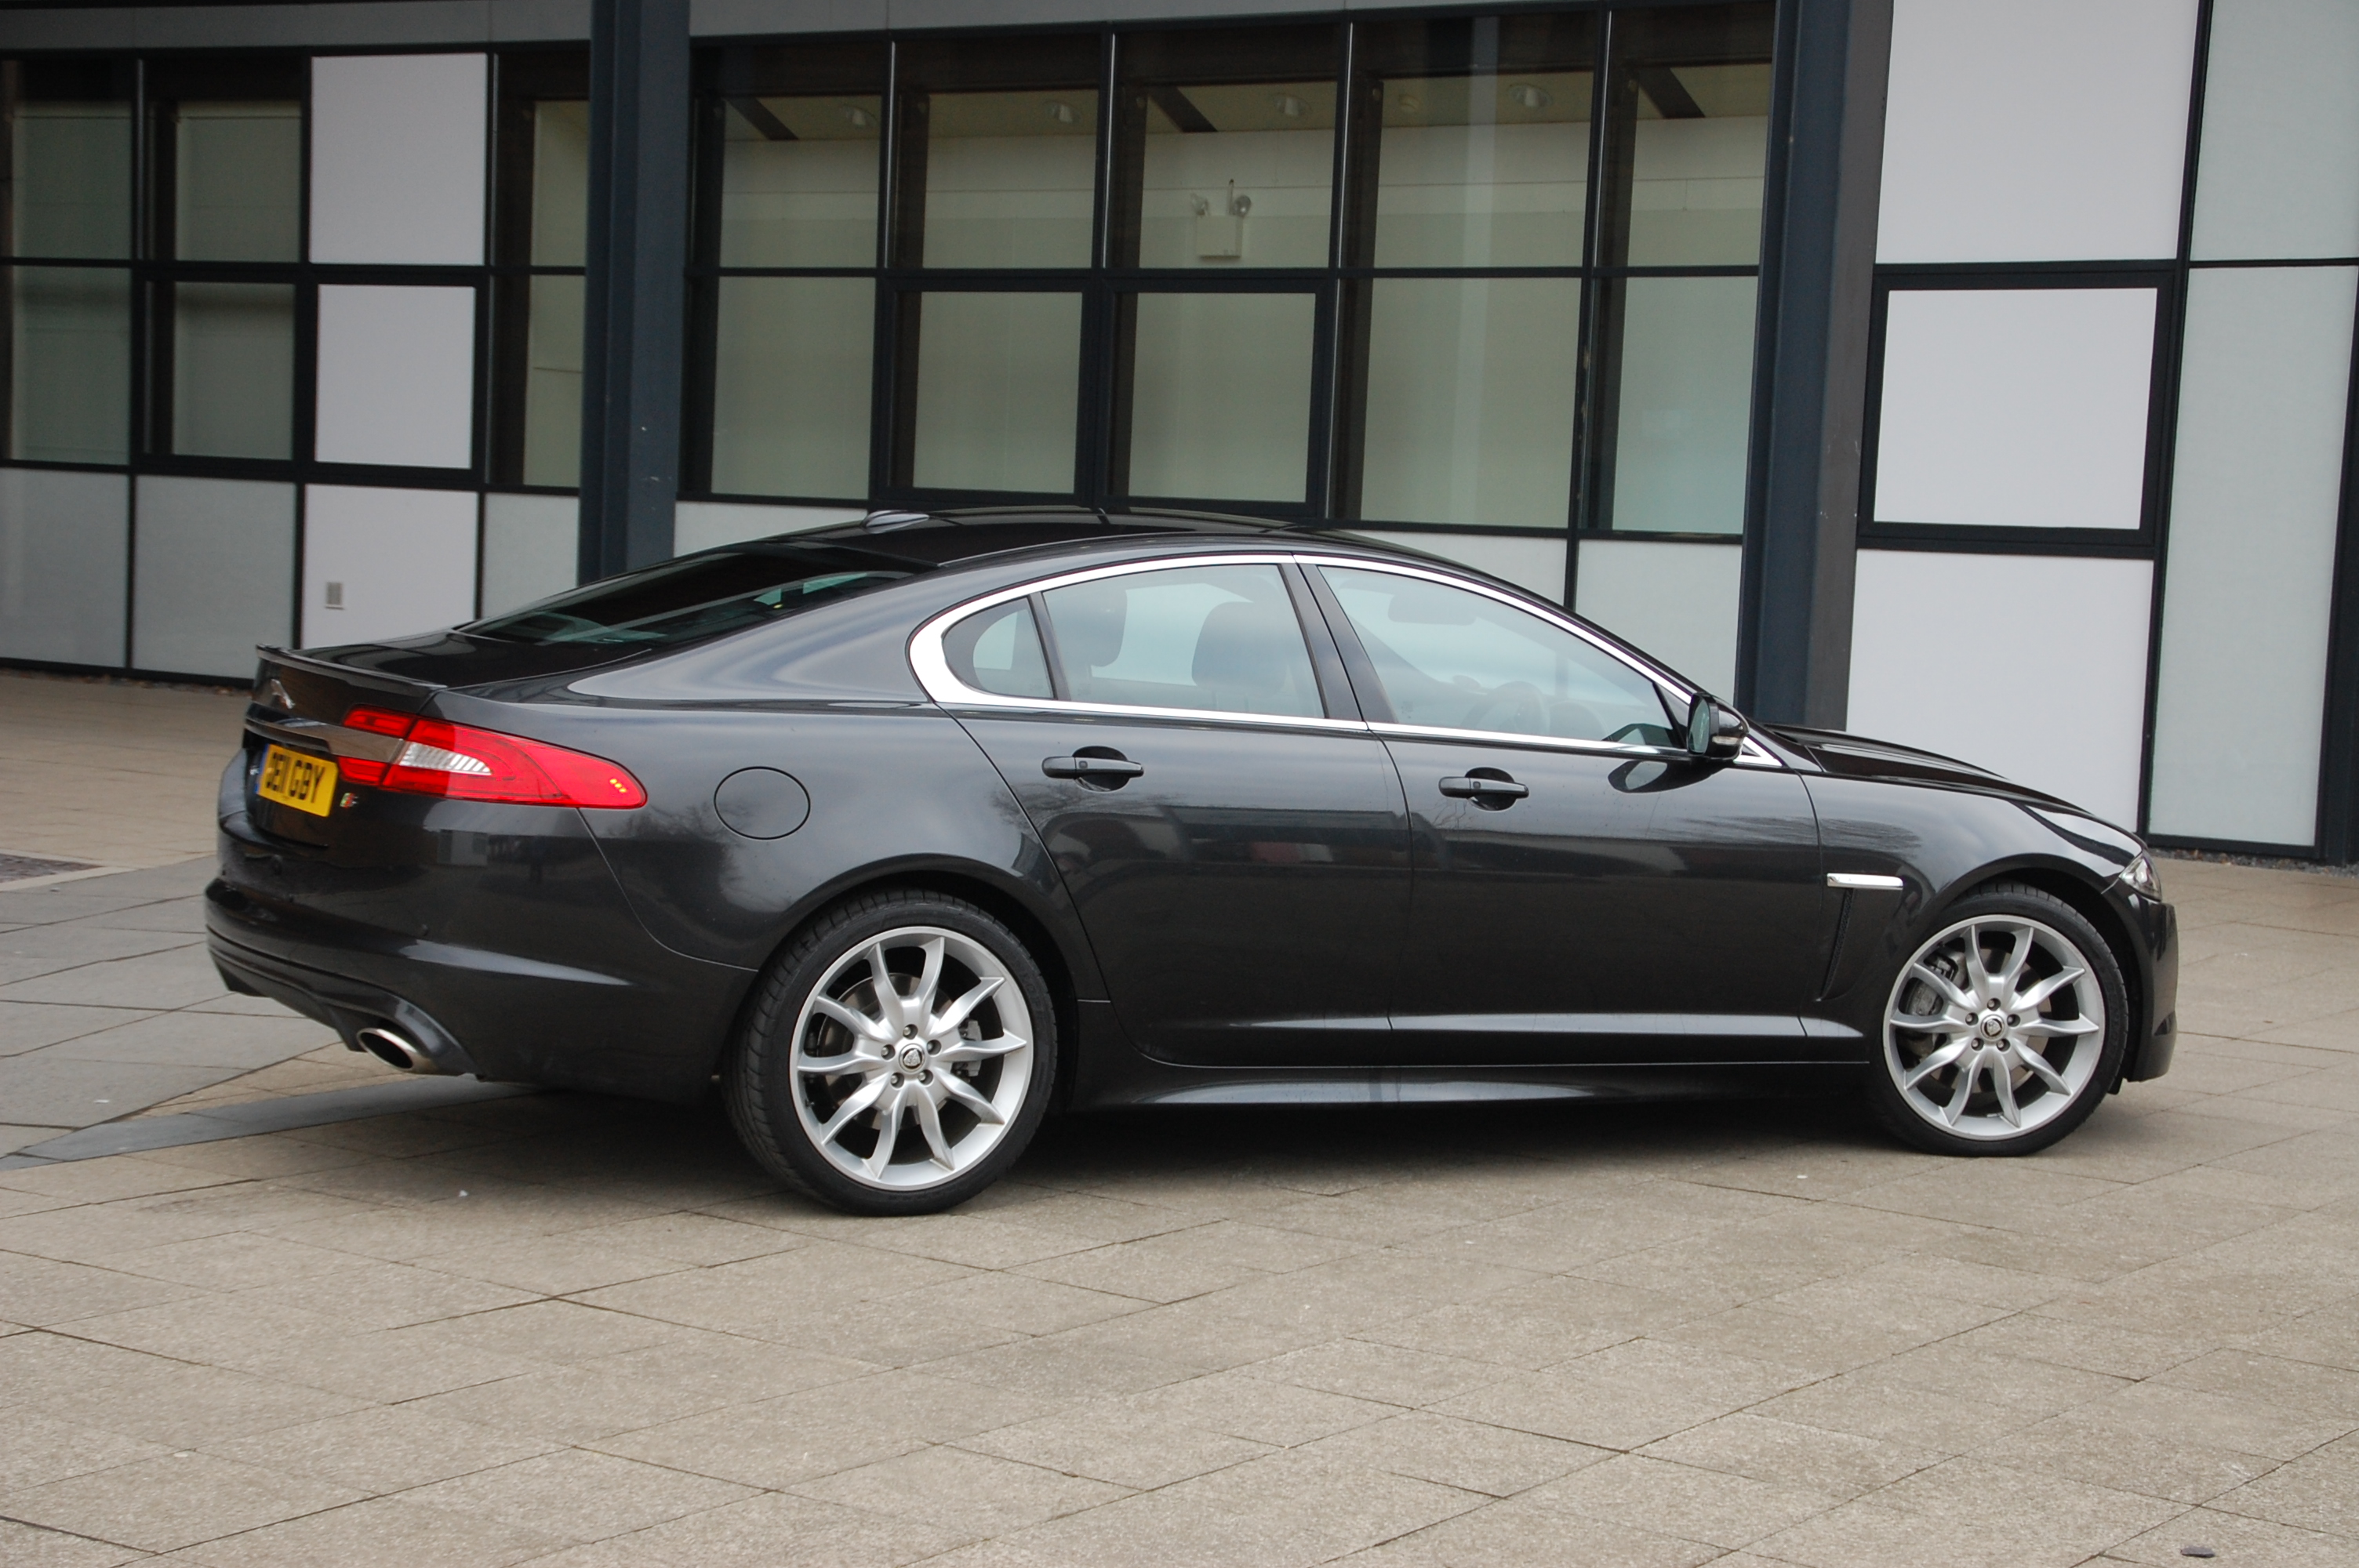 jaguar xf 3 0 v6 diesel s portfolio road test petroleum vitae. Black Bedroom Furniture Sets. Home Design Ideas